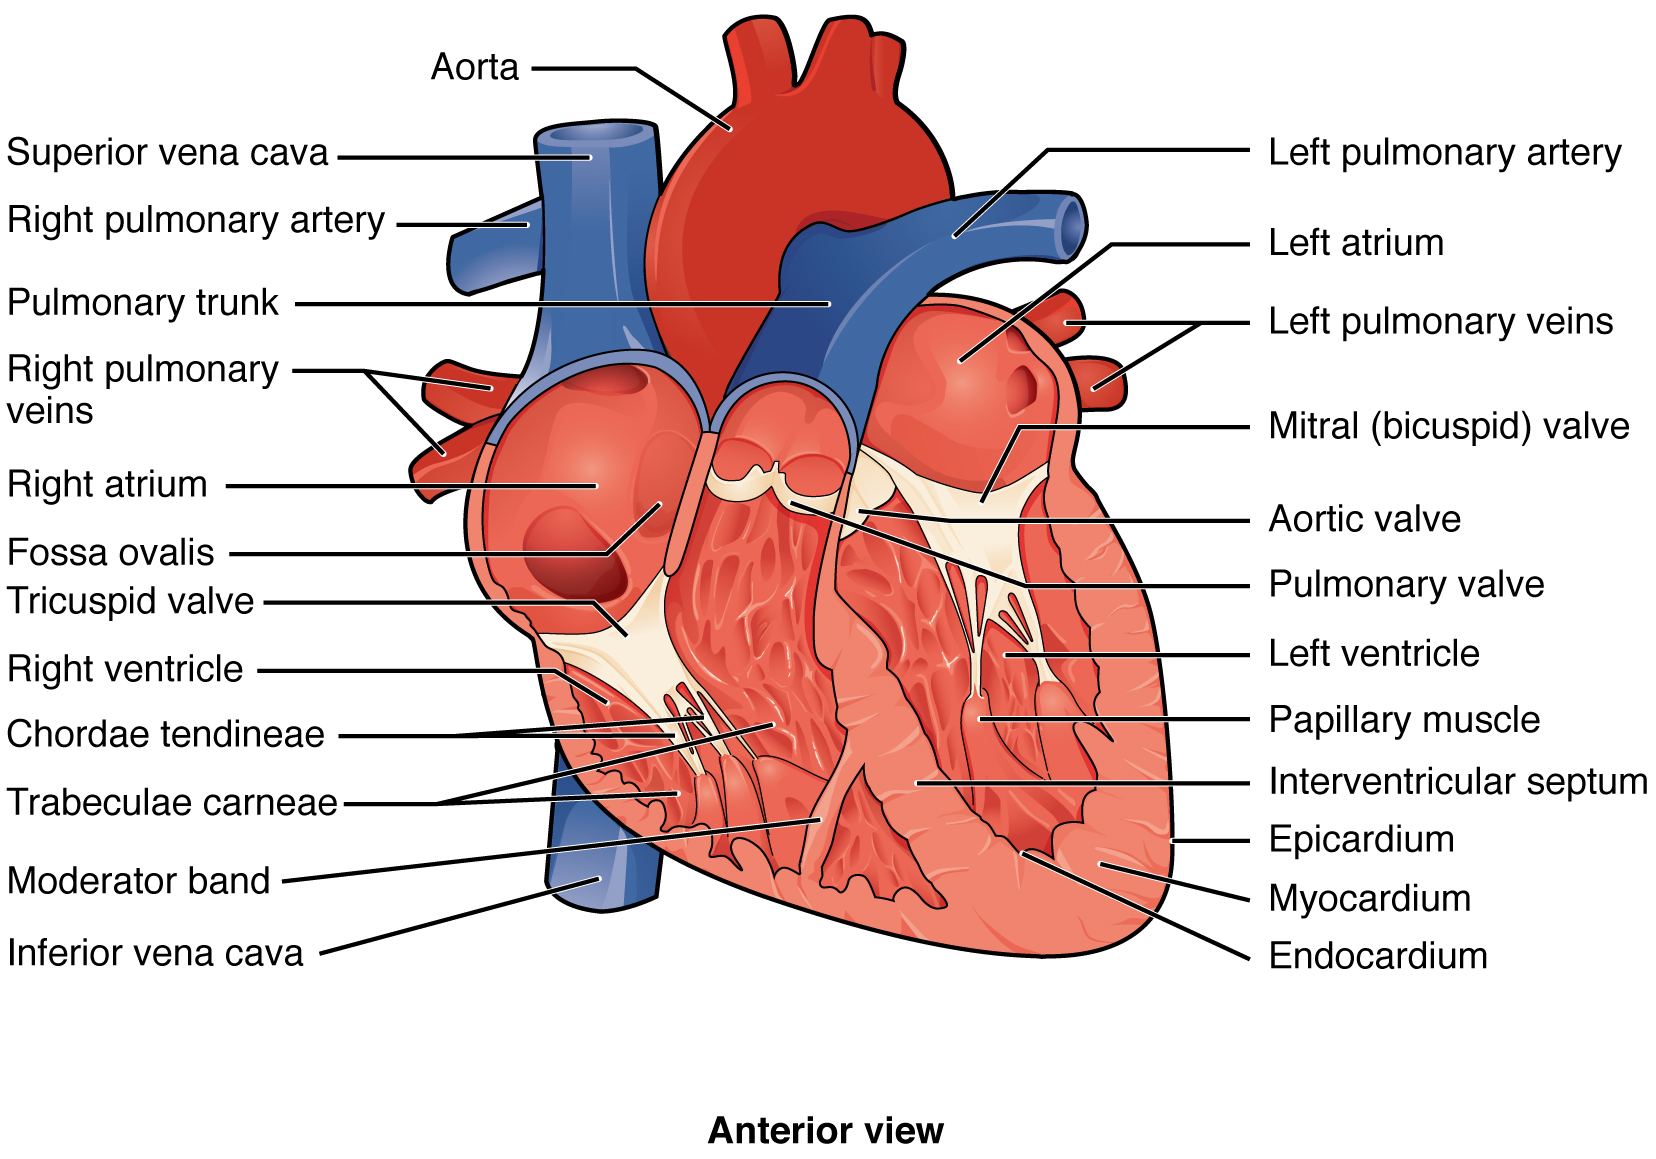 hight resolution of in this figure the top panel shows the image of the heart with the major parts